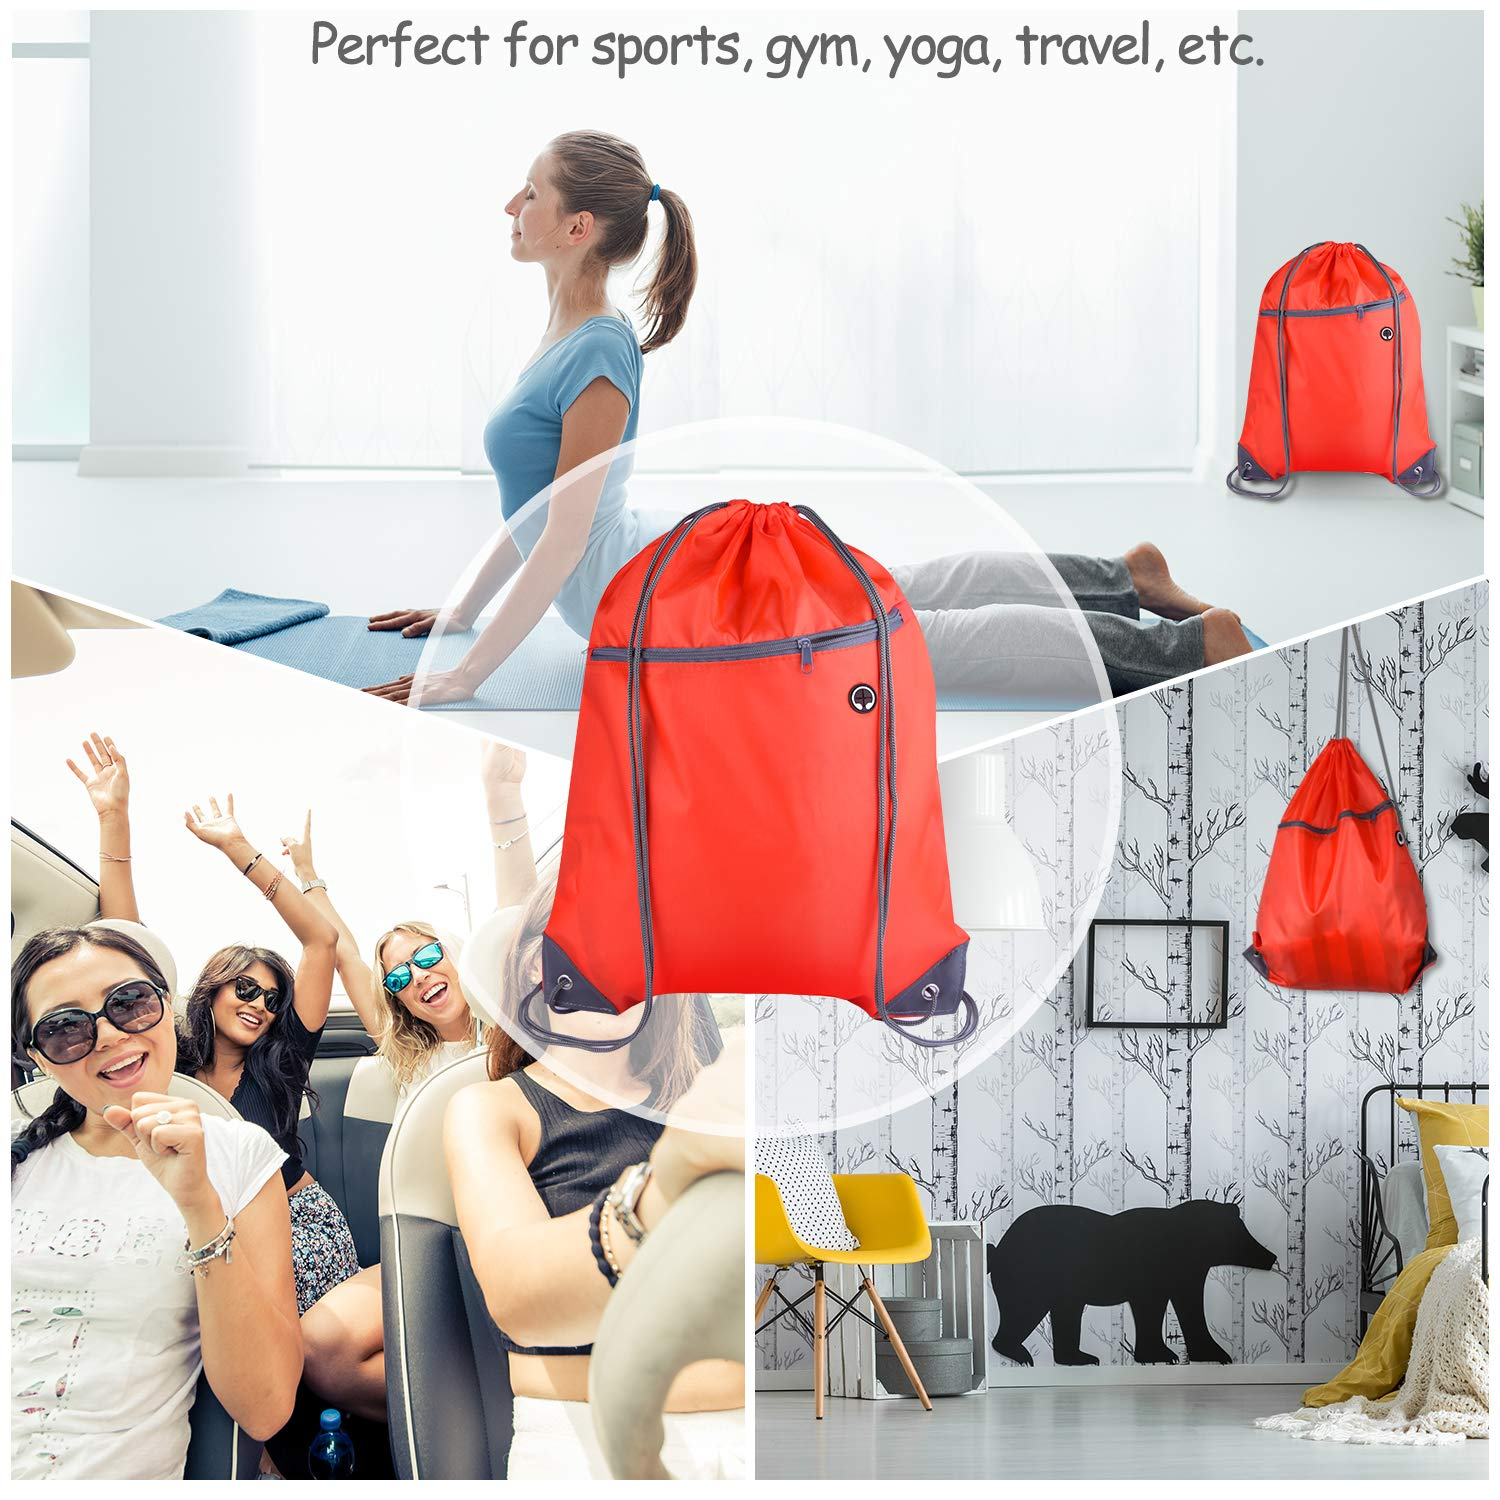 KUUQA 2 Pcs Drawstring Backpack Bags Sports Cinch Sack String Backpack Storage Bags for School Gym Traveling Blue